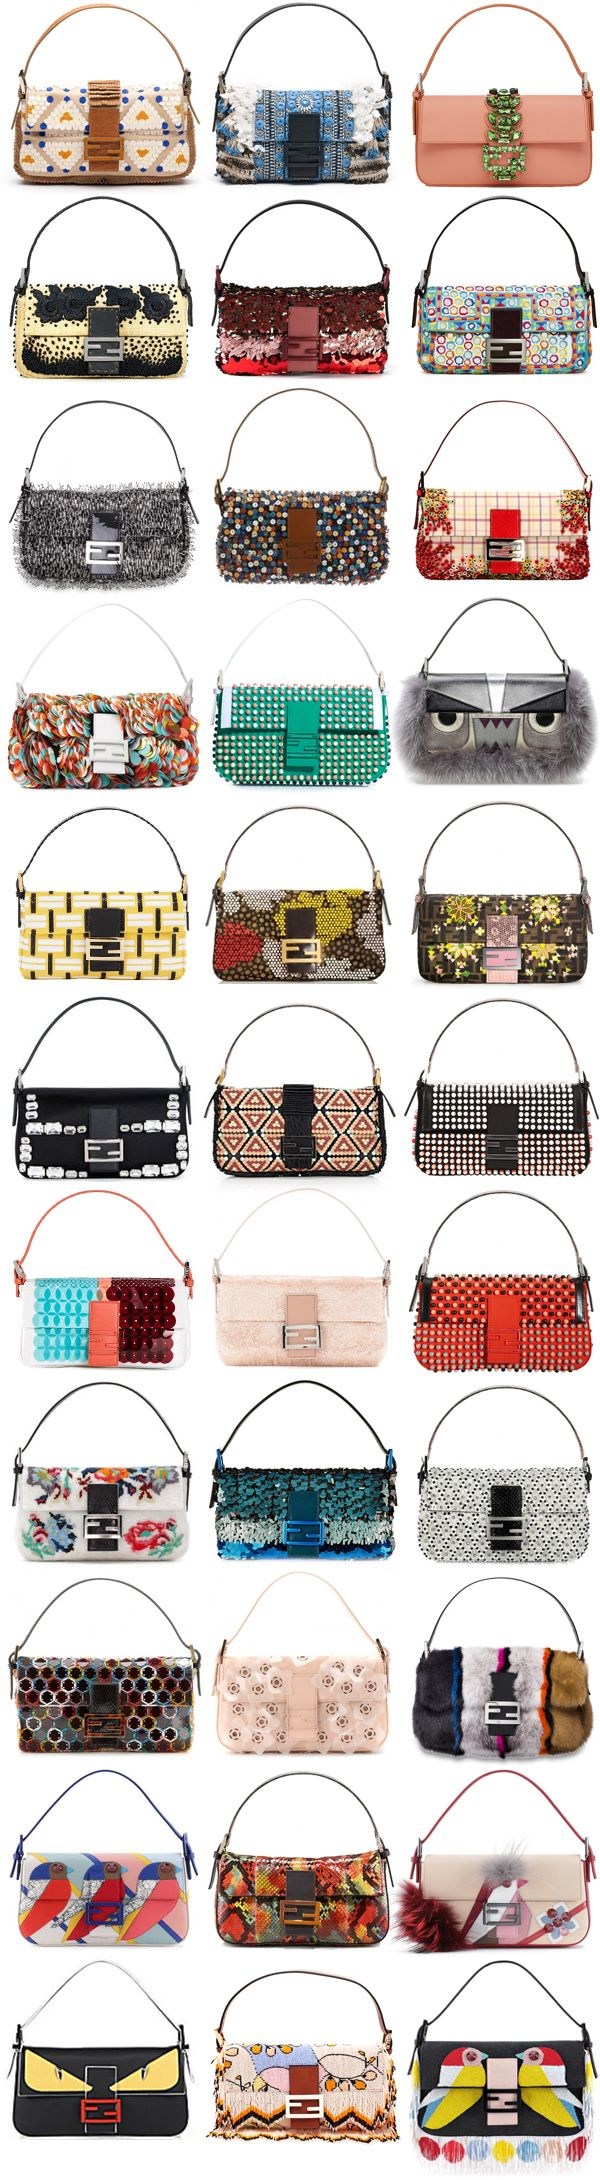 FENDI BAGUETTE // The Perfect Collectors Obsession! Women's Handbags & Wallets - http://amzn.to/2j9xWYI